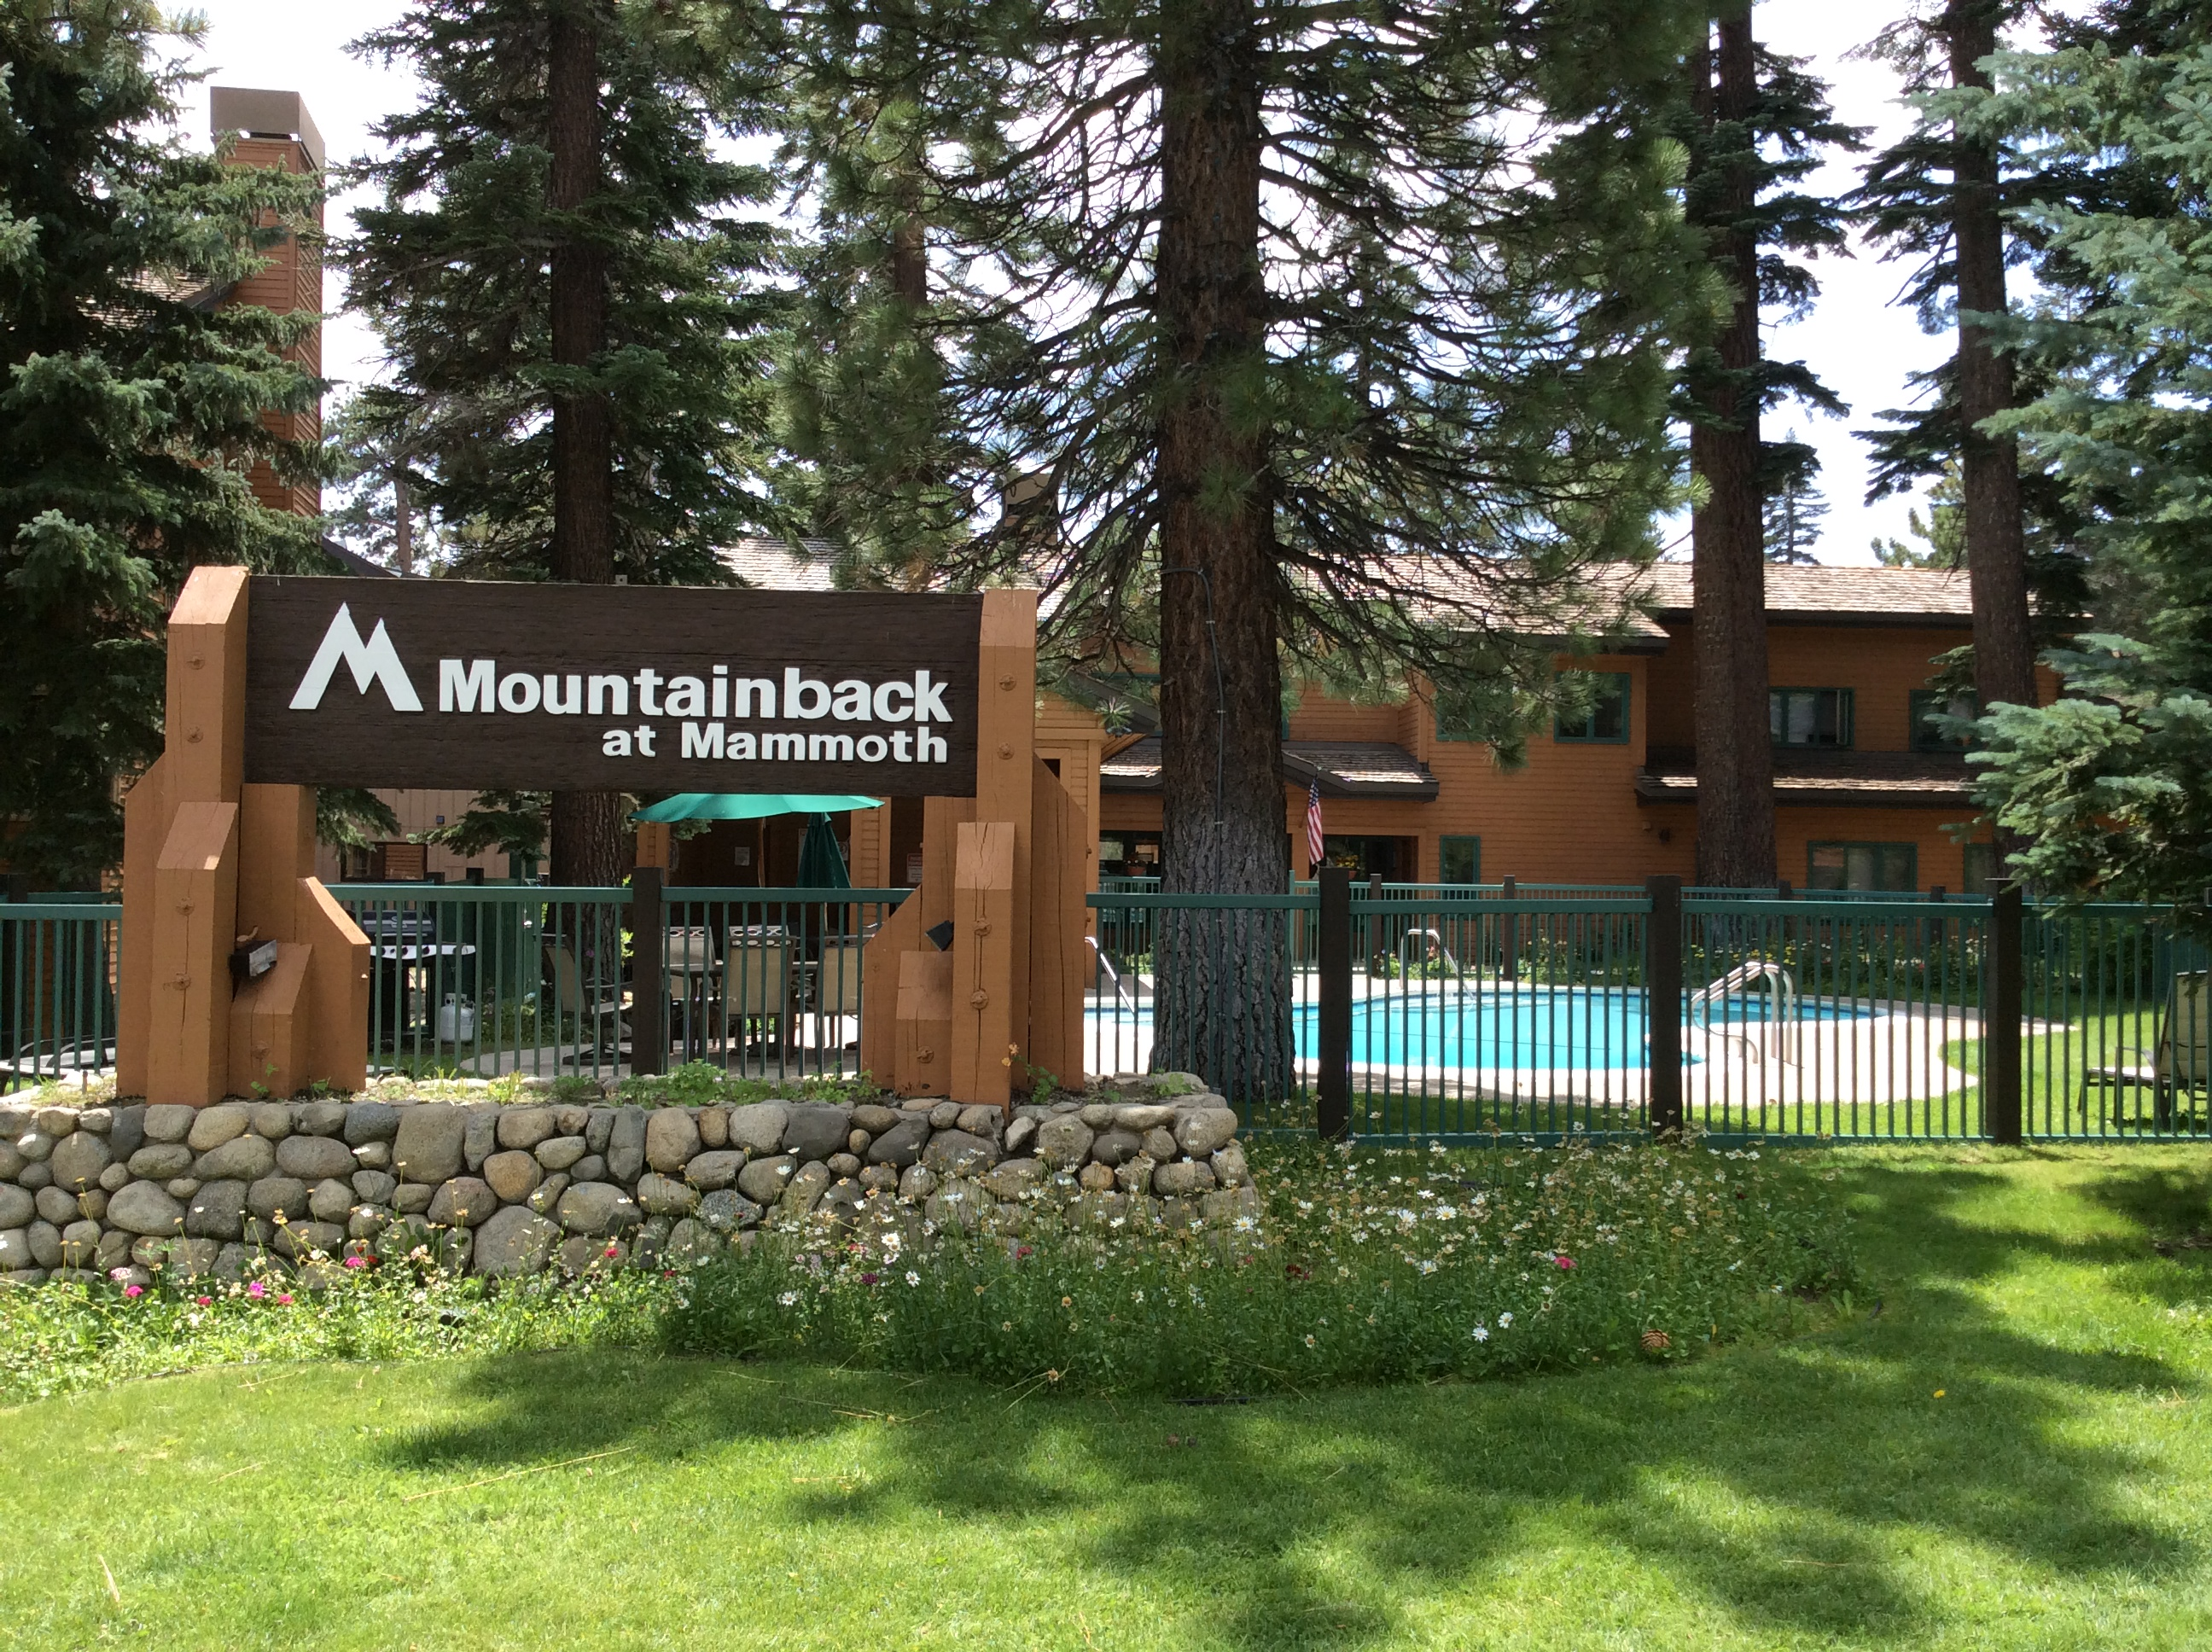 Mountainback Condos Complex Sign and Pool in Summer